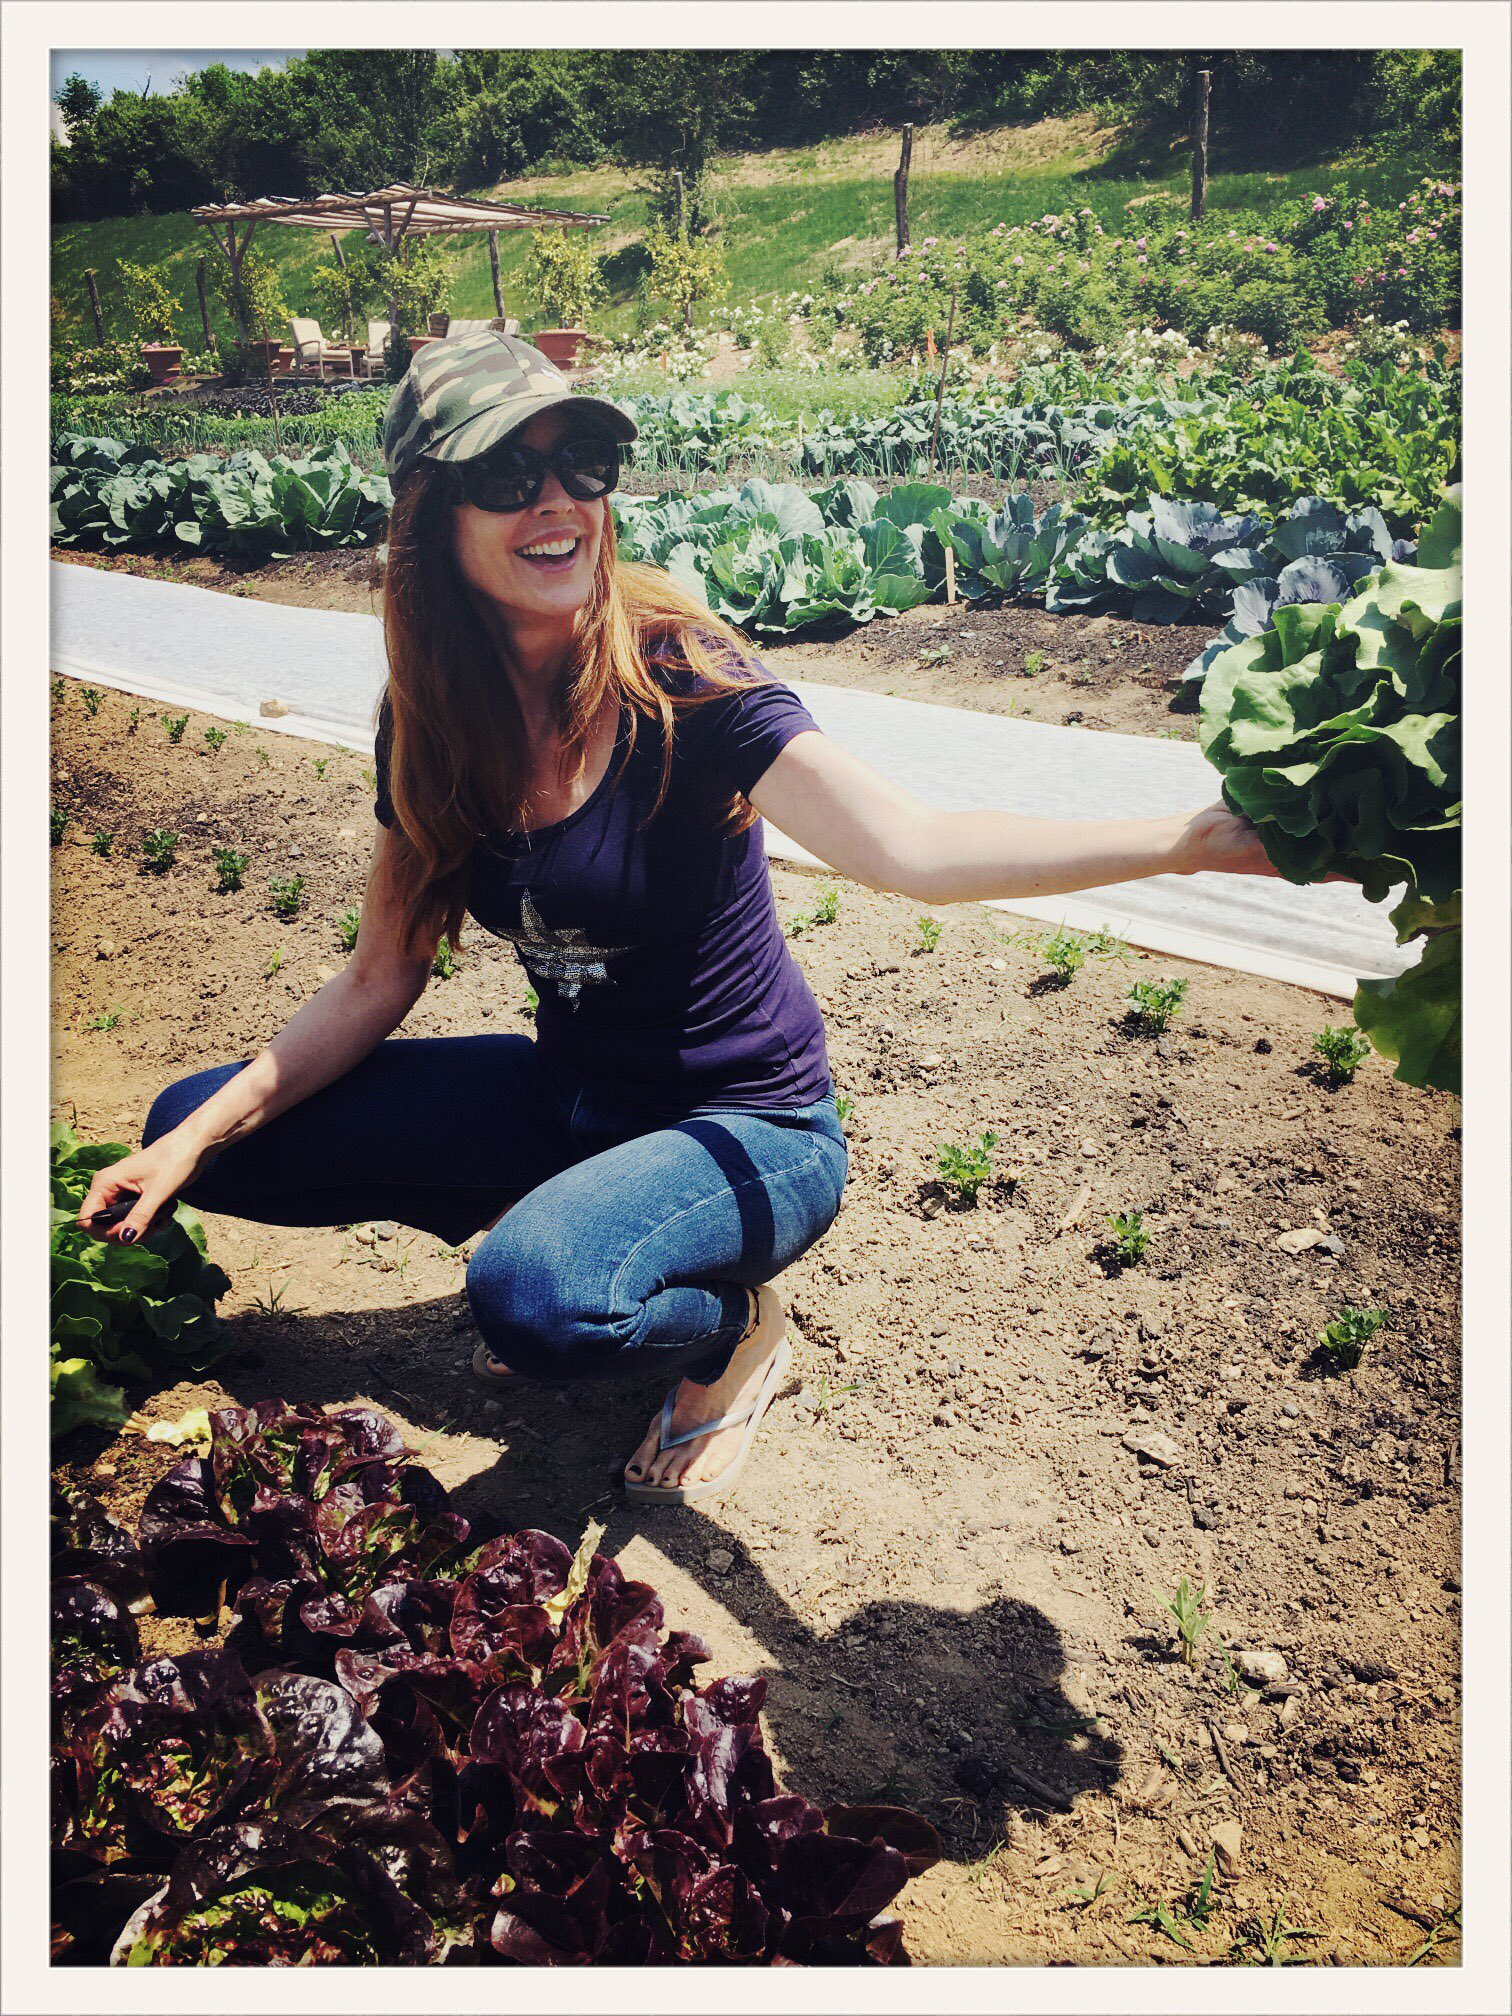 Cutting my salad for lunch-Right from the earth: Butter lettuce... #foodie #farm #salad #earth https://t.co/vlNz8iGwmg